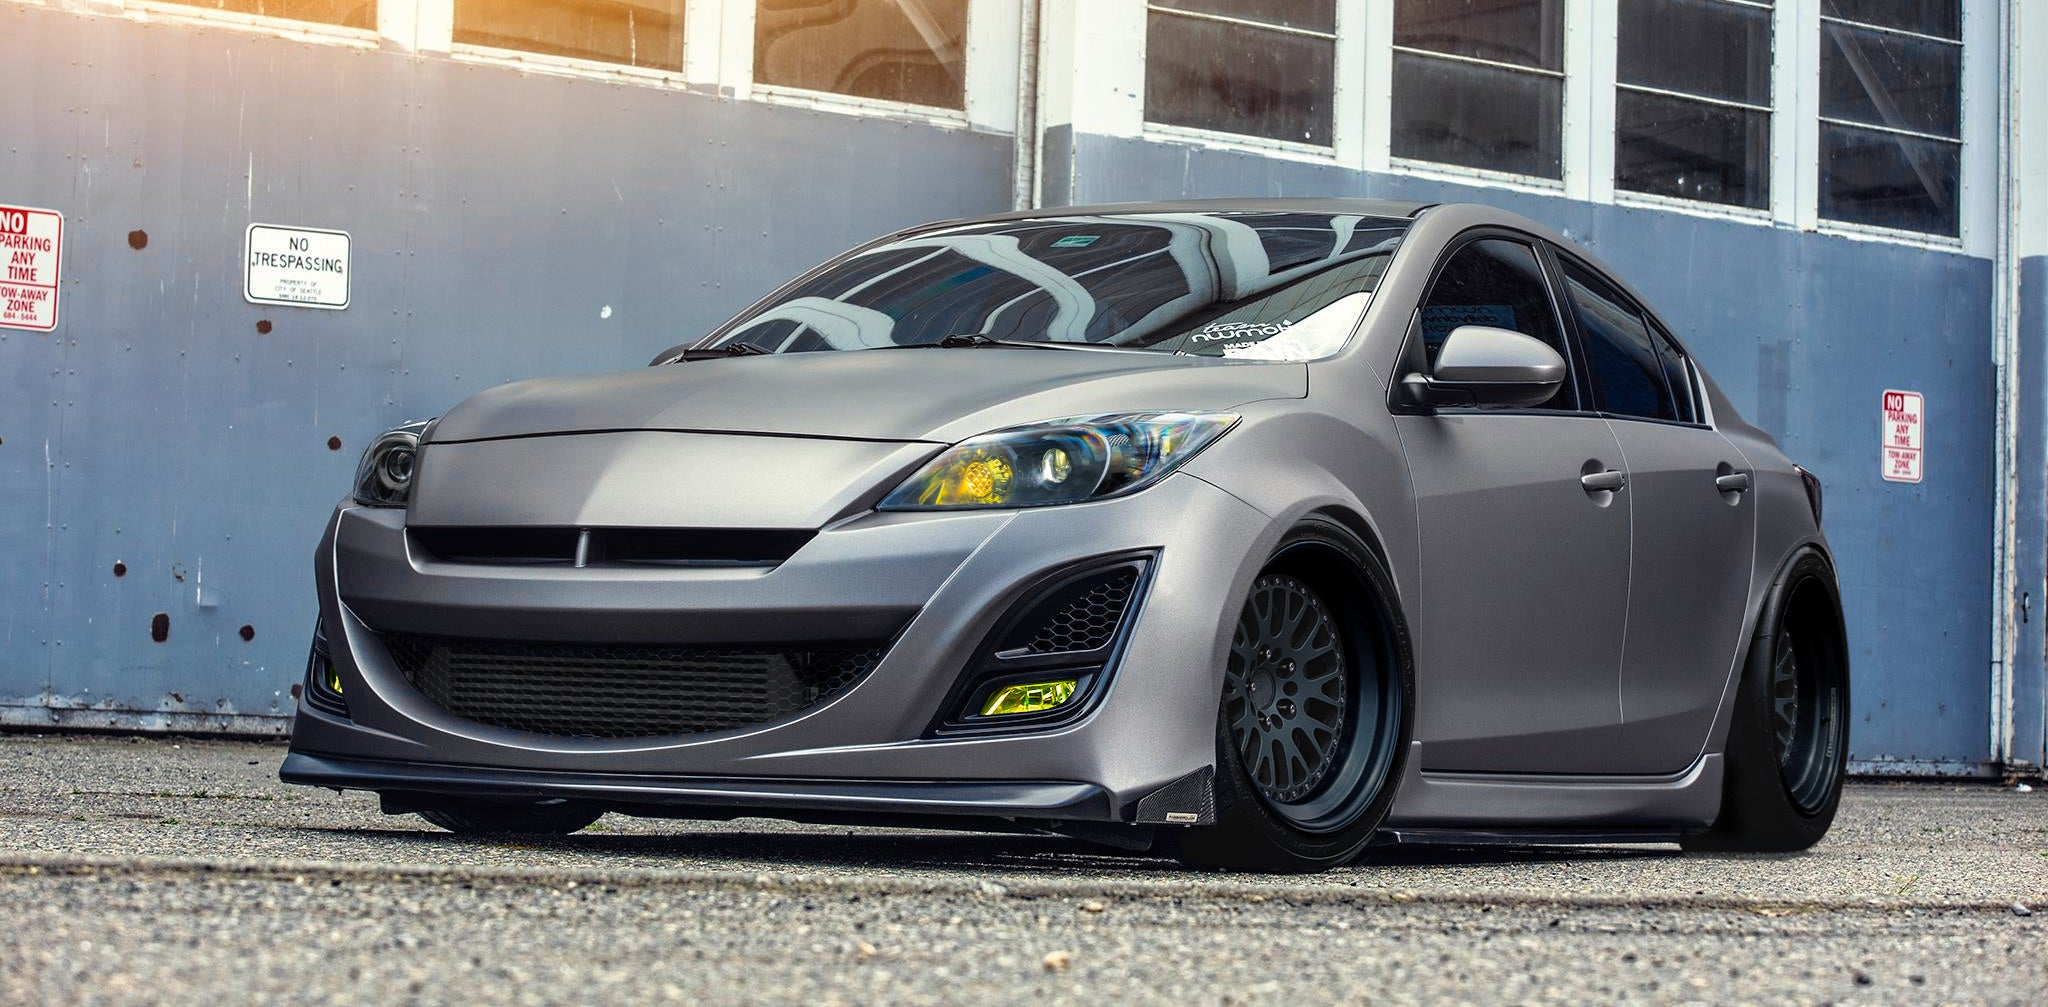 DailyDriven NWMotiv turboProject3 Mazda3 Sedan